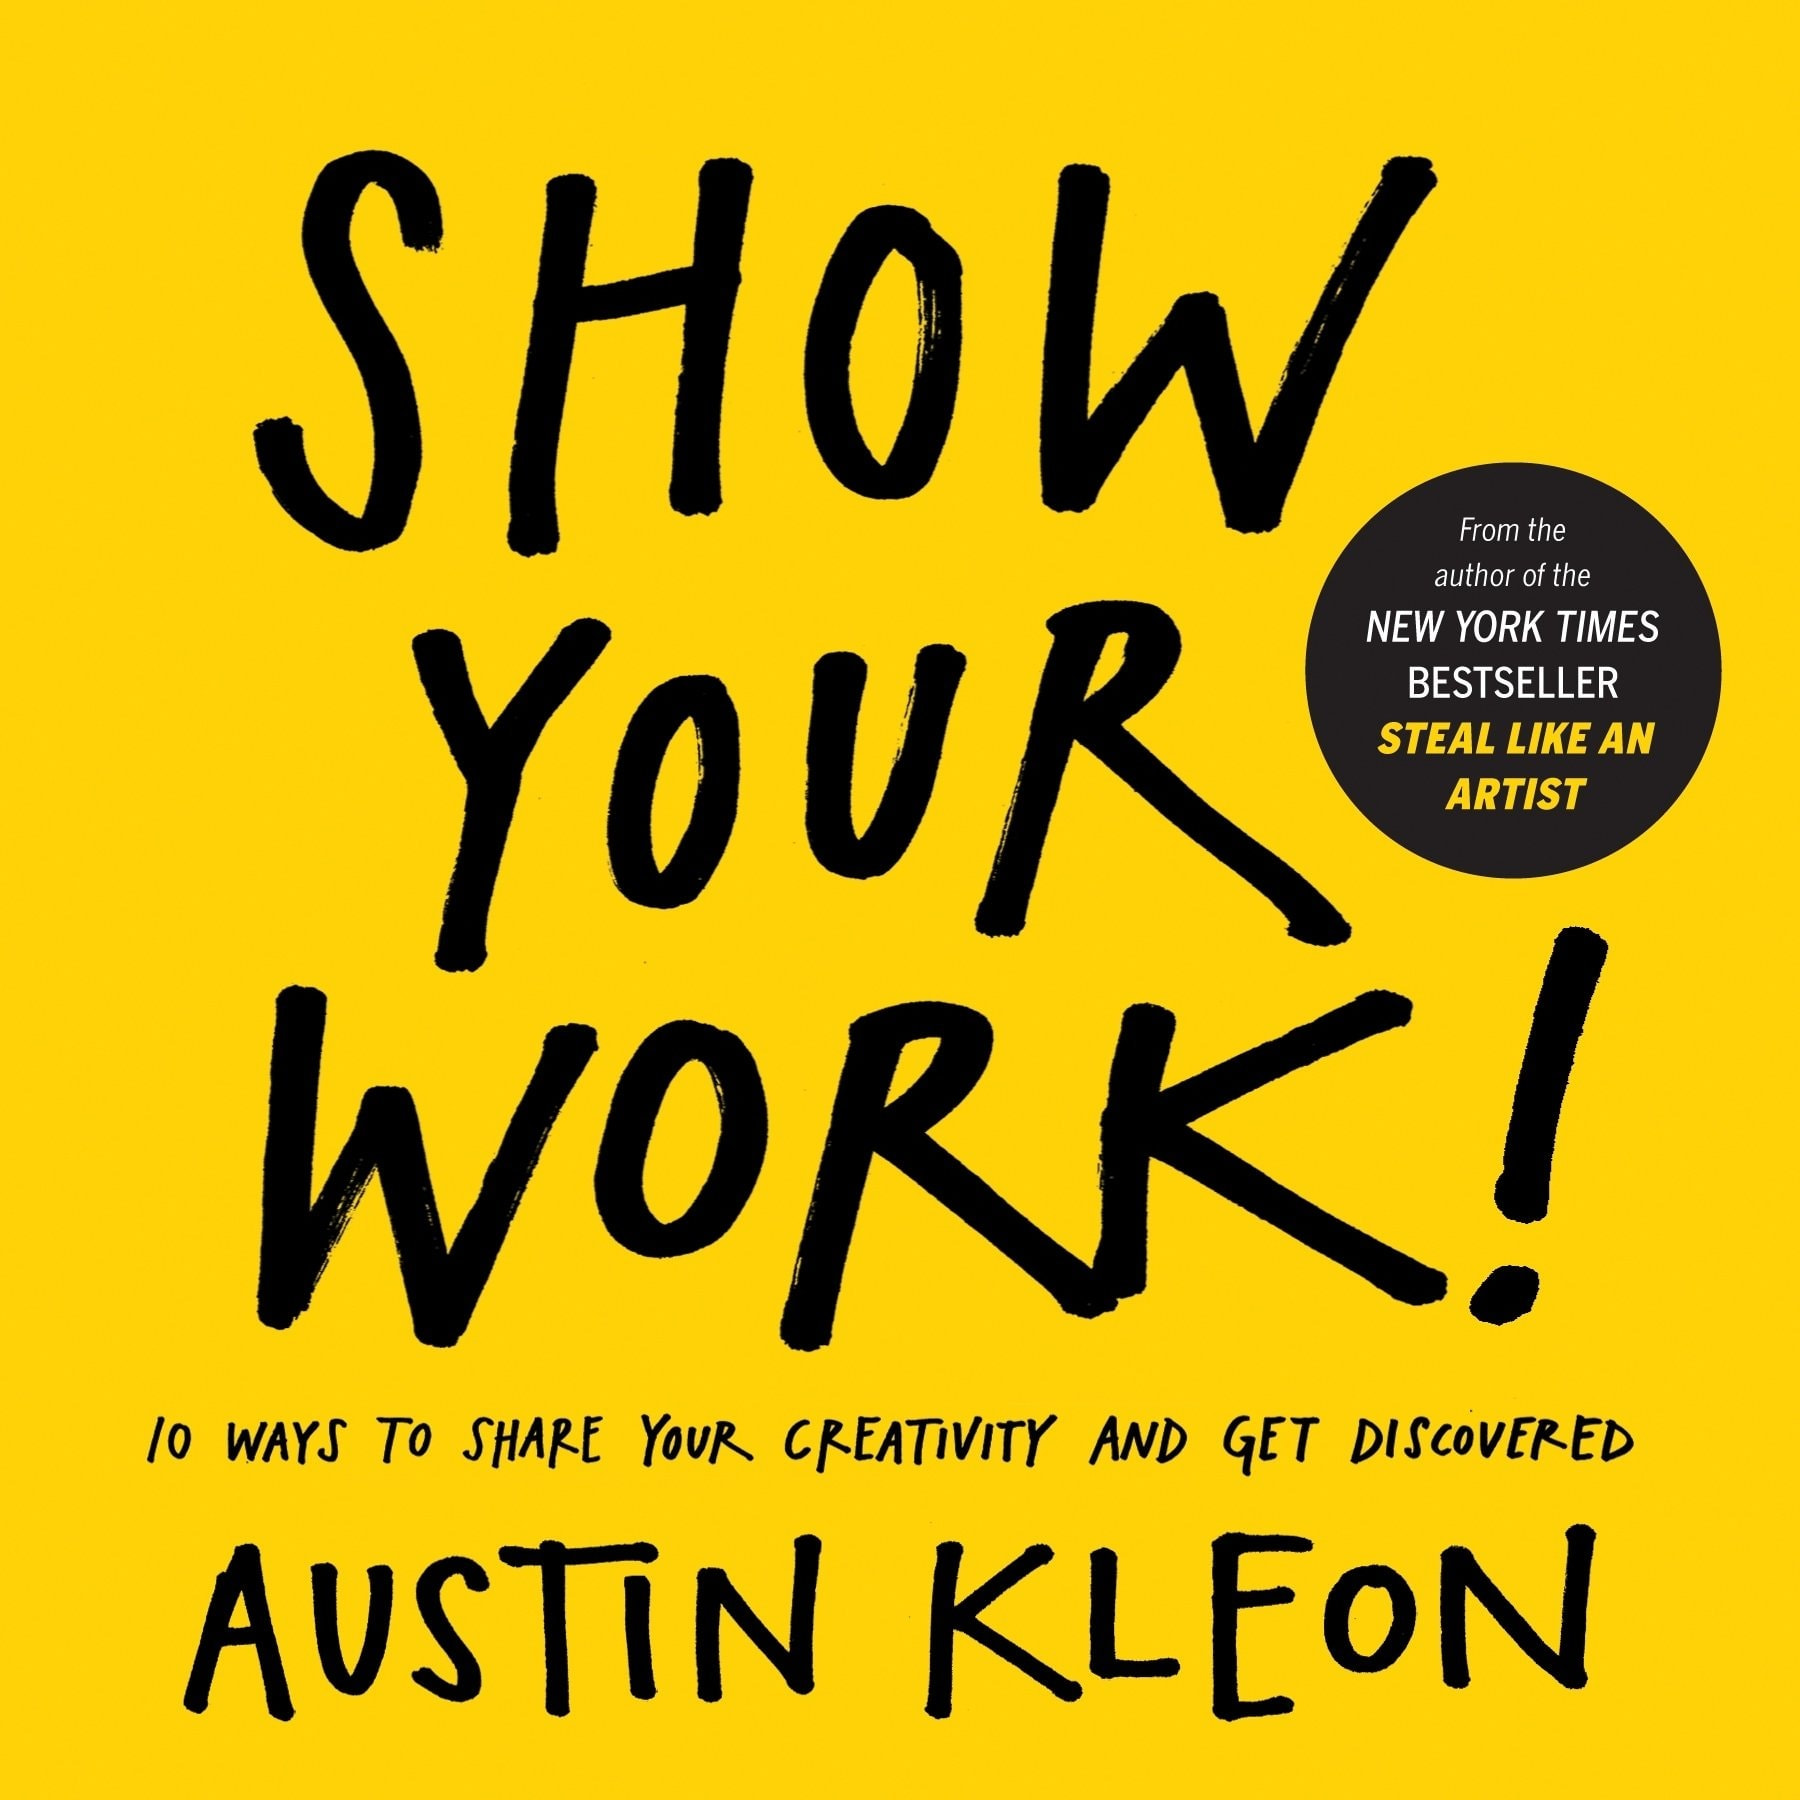 Show Your Work!: 10 Ways to Share Your Creativity and Get Discovered – Austin Kleon